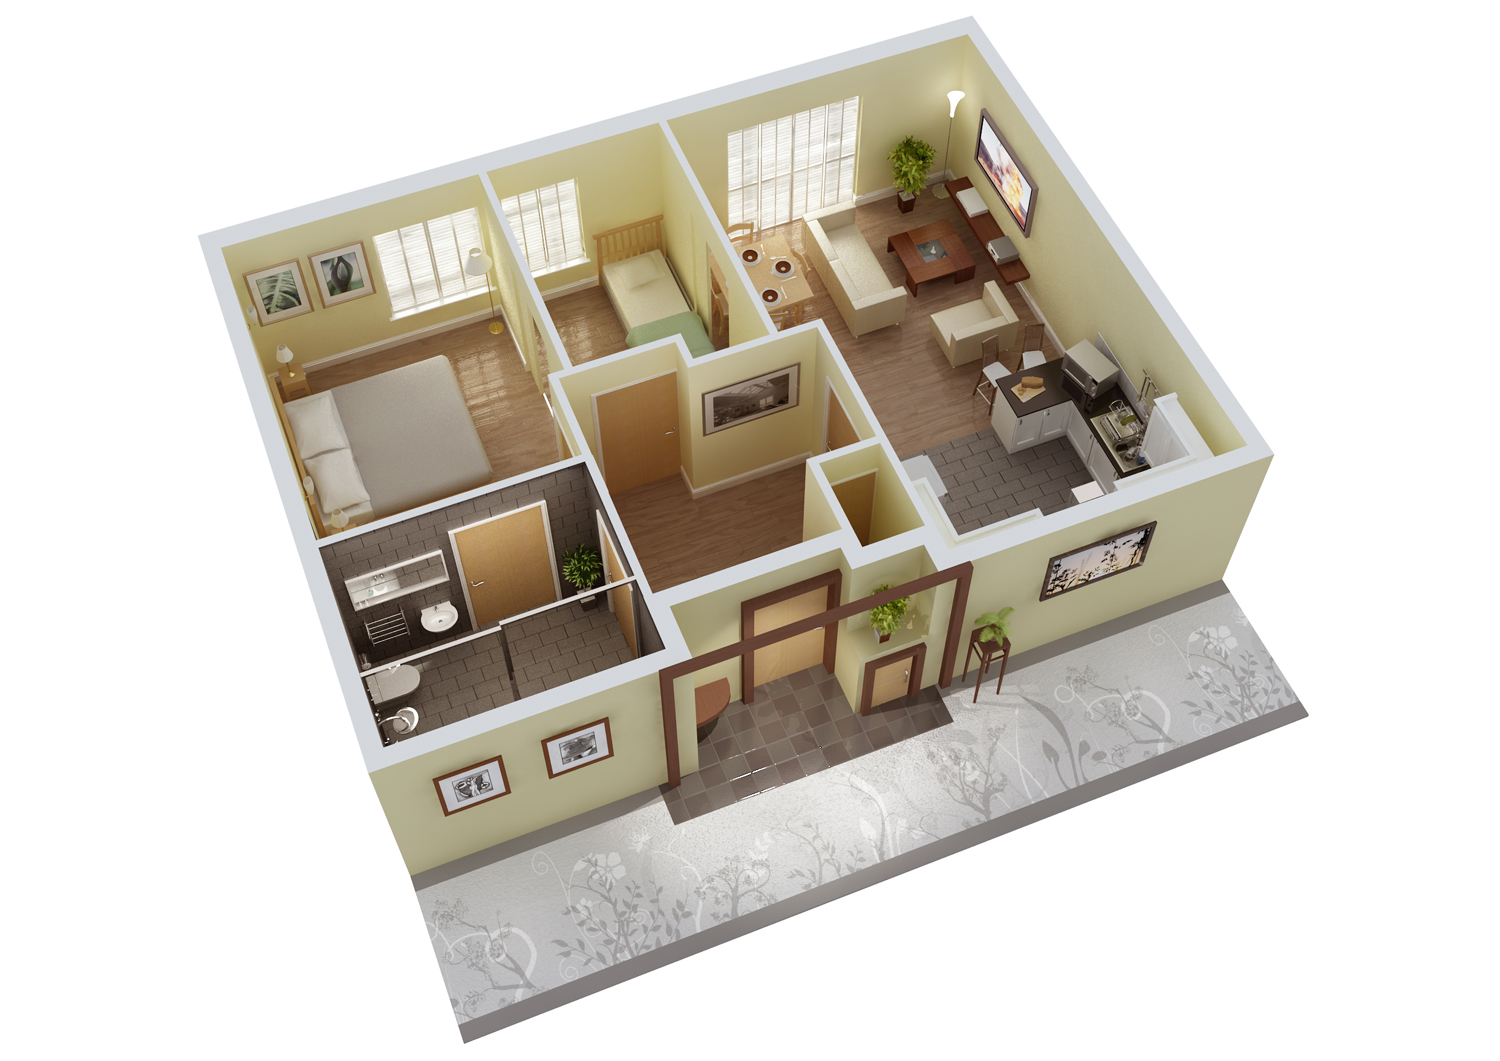 Mathematics resources project 3d floor plan for 3d floor design